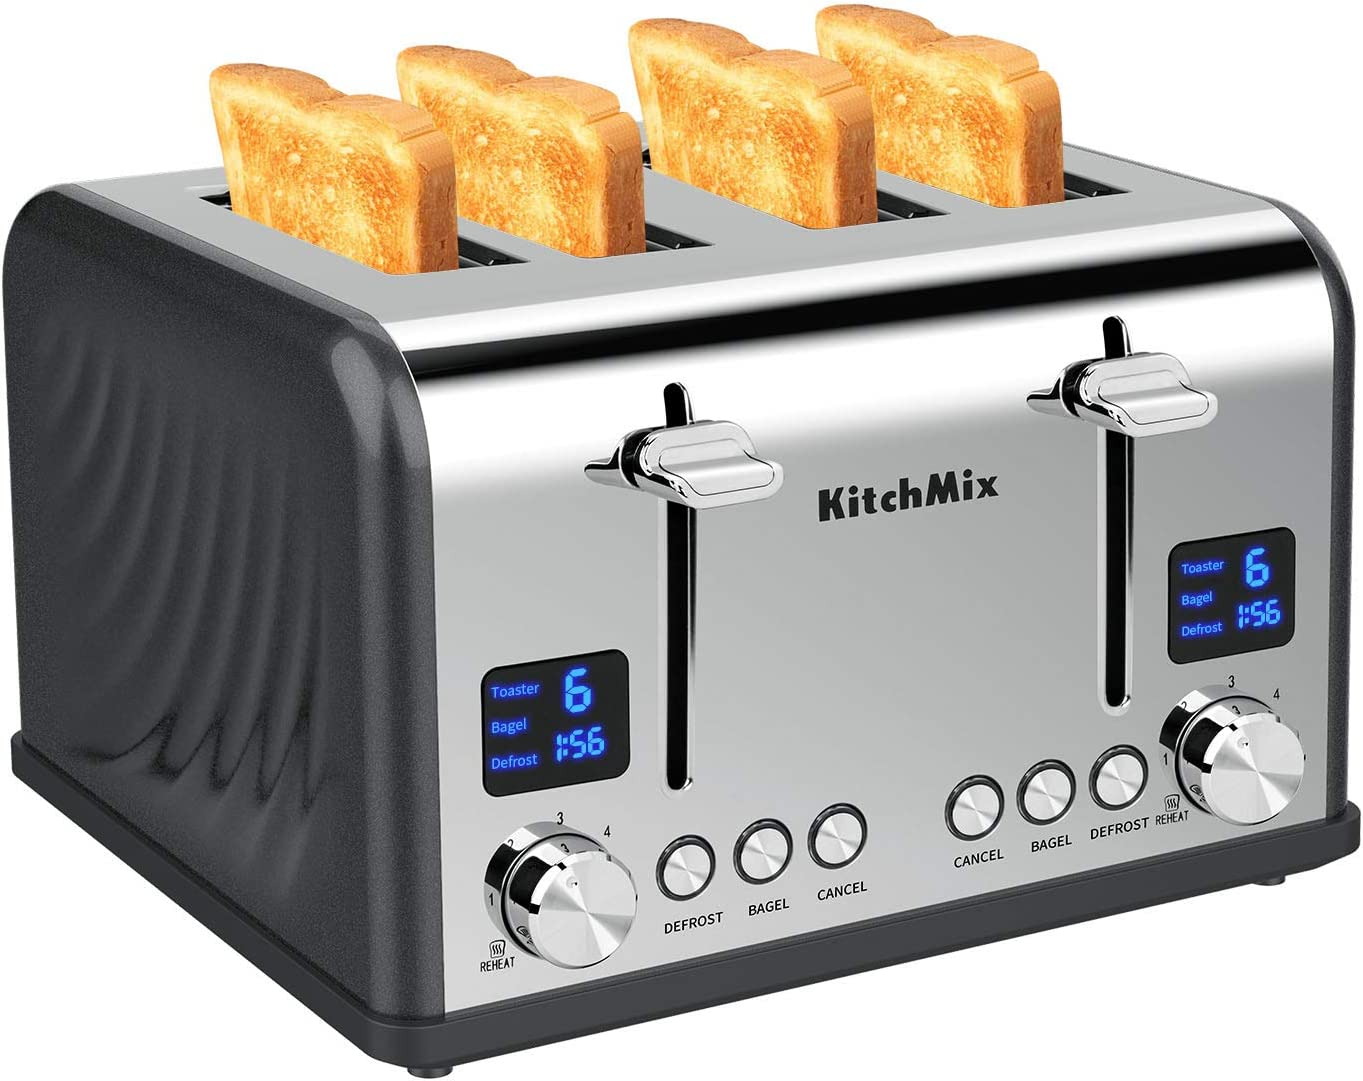 Toaster 4 Slice, KitchMix Bagel Stainless Toaster with LCD Timer, Extra Wide Slots, Dual Screen, Removal Crumb Tray